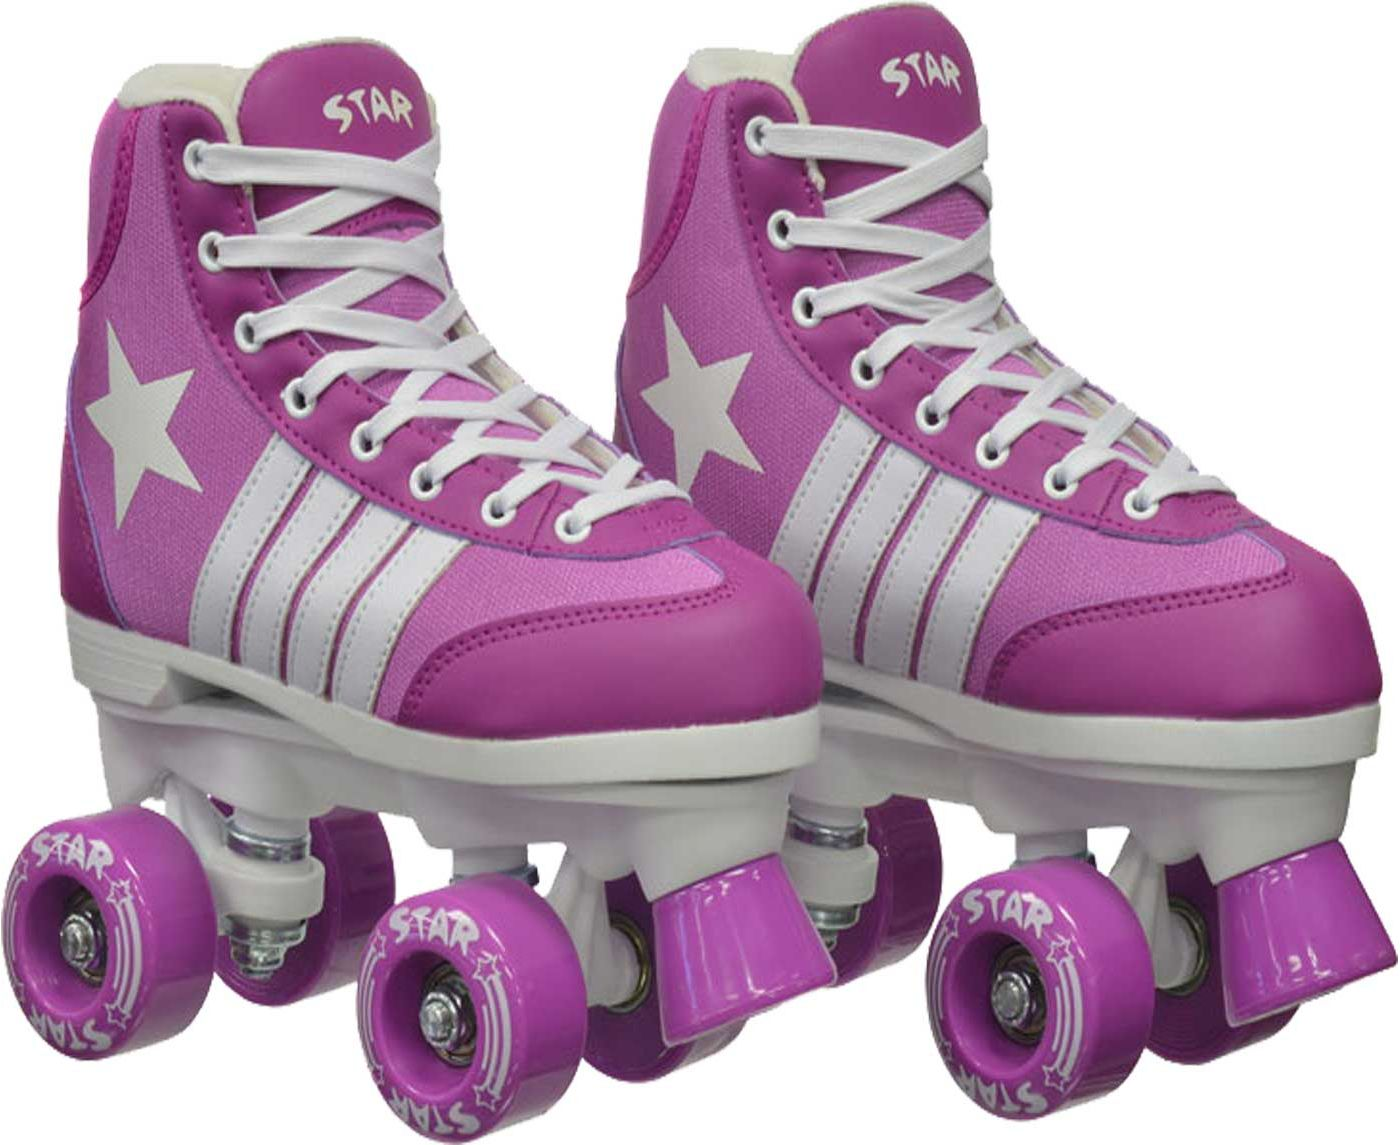 Epic Girls' Star Pegasus Quad Roller Skates